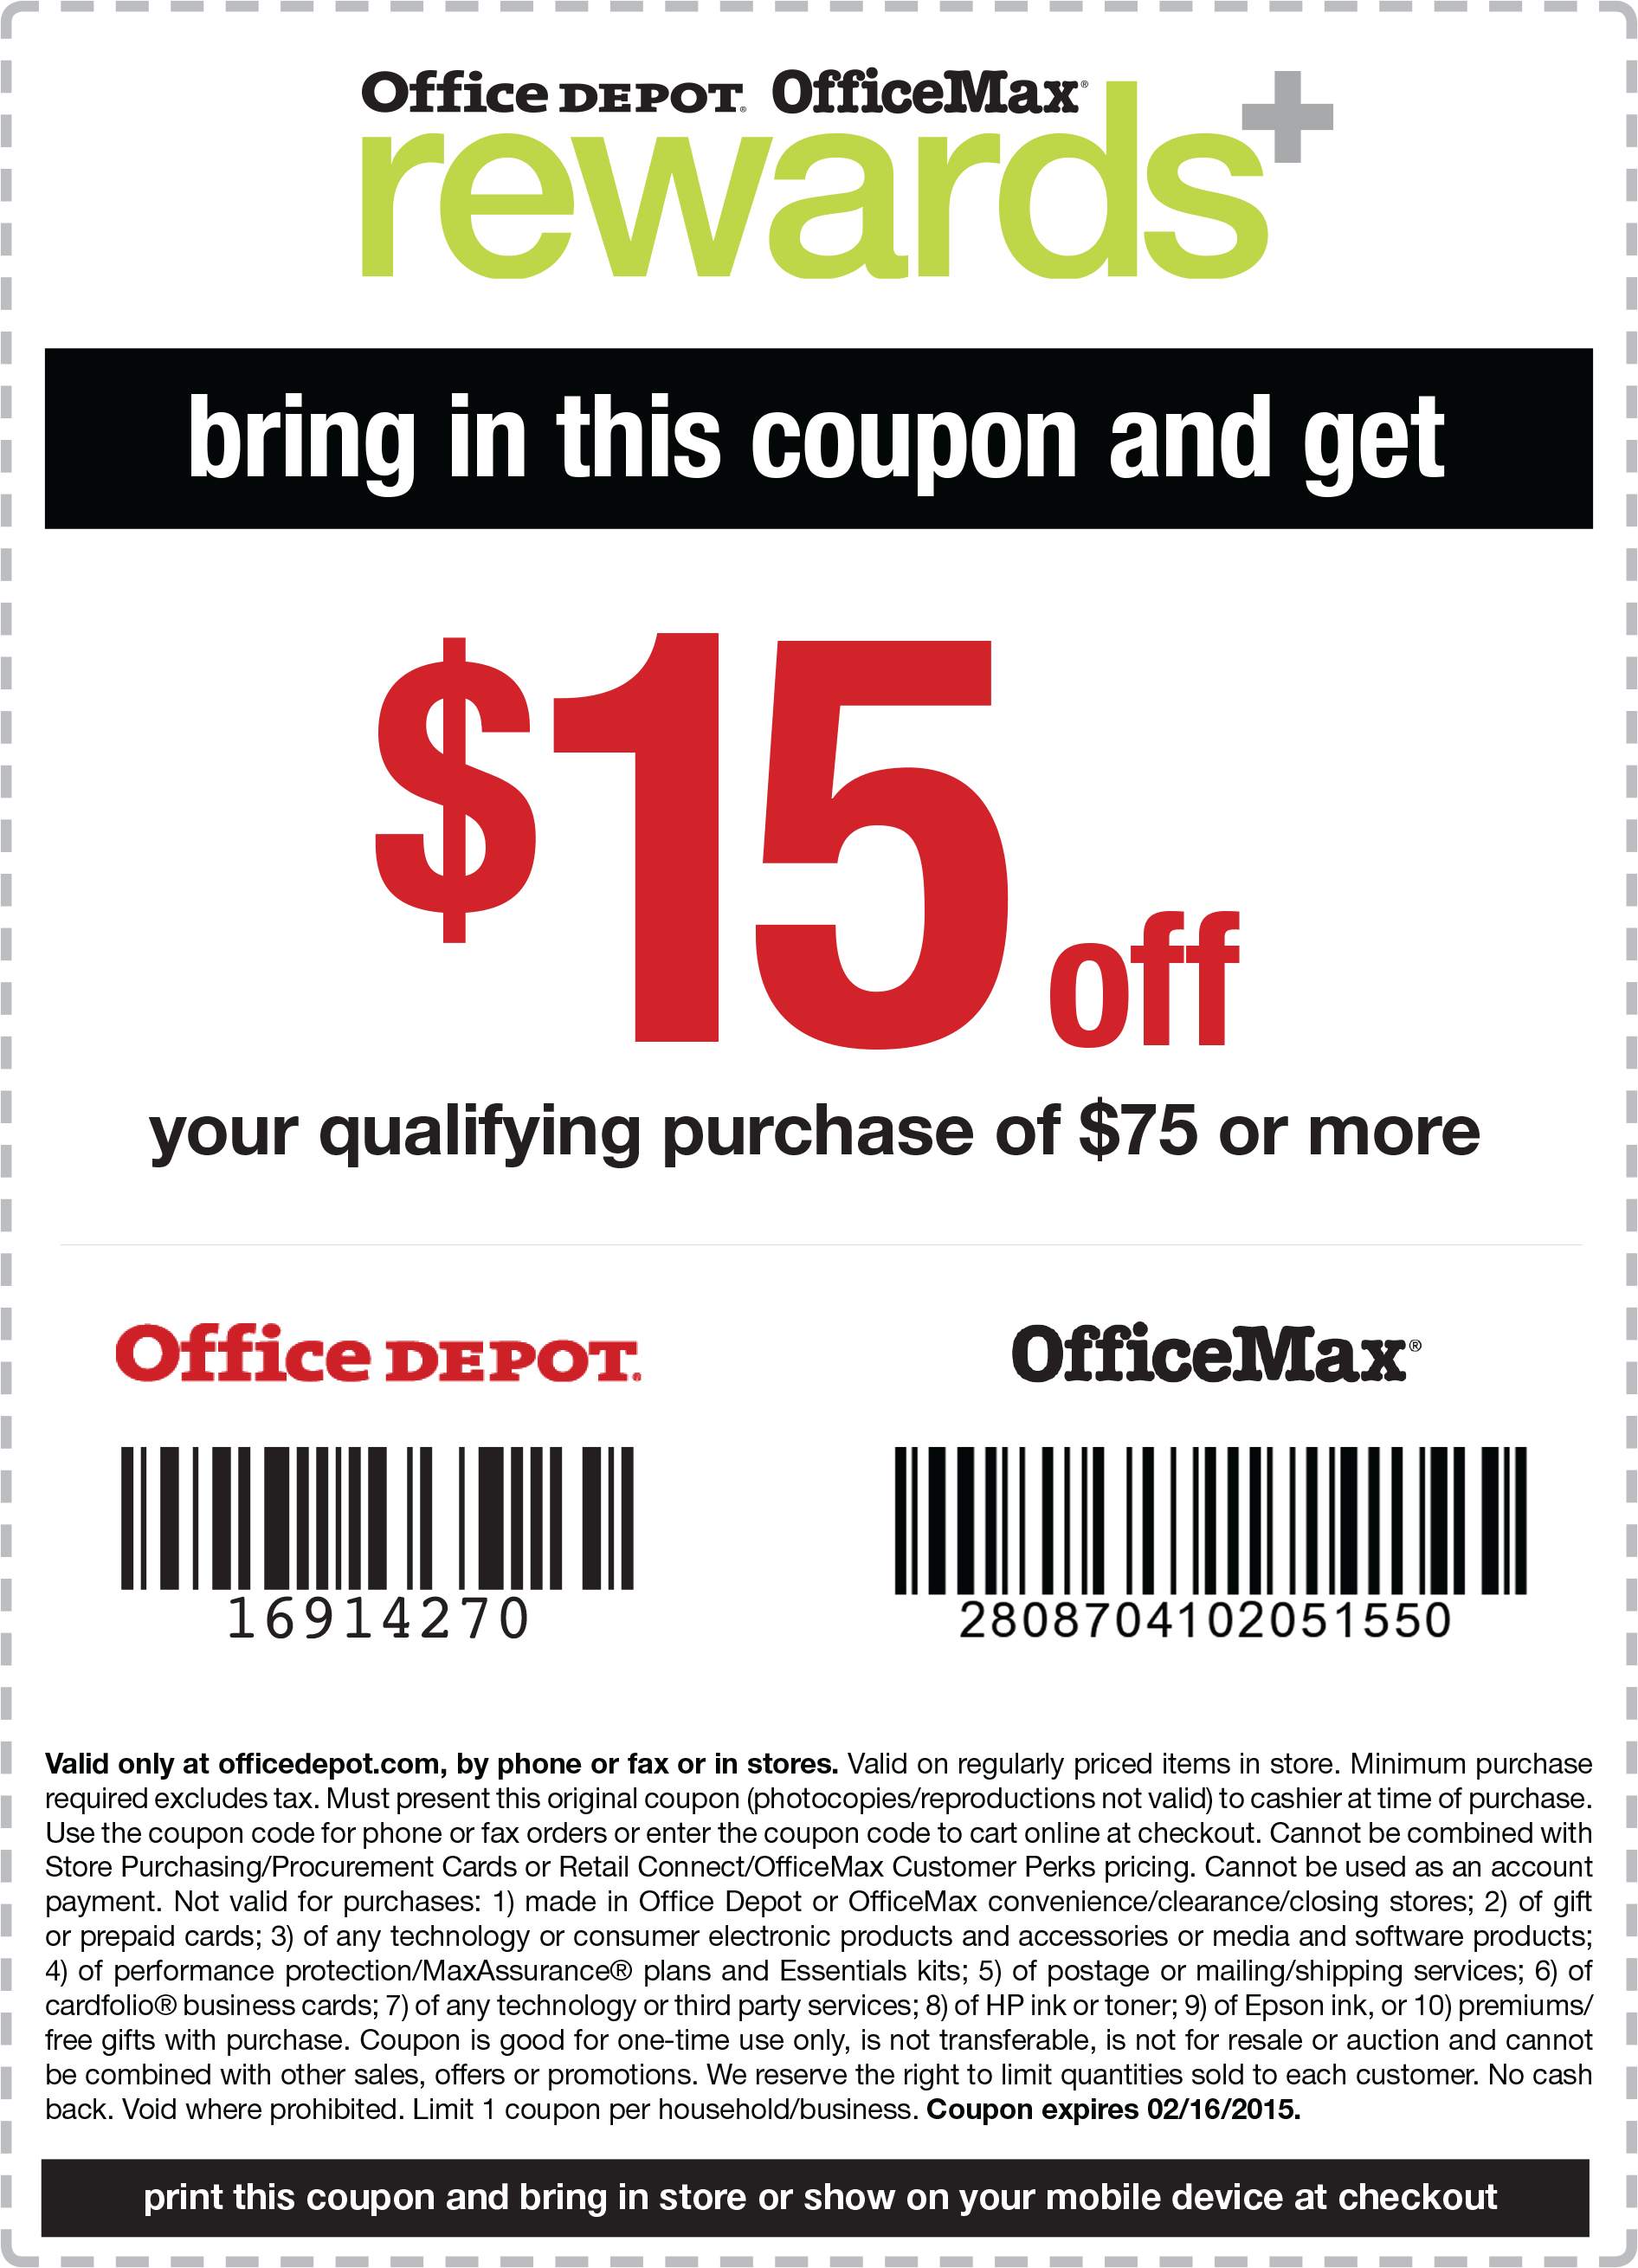 Office Depot Coupon February 2017 $15 off $75 at Office Depot & OfficeMax, or online via promo code 16914270